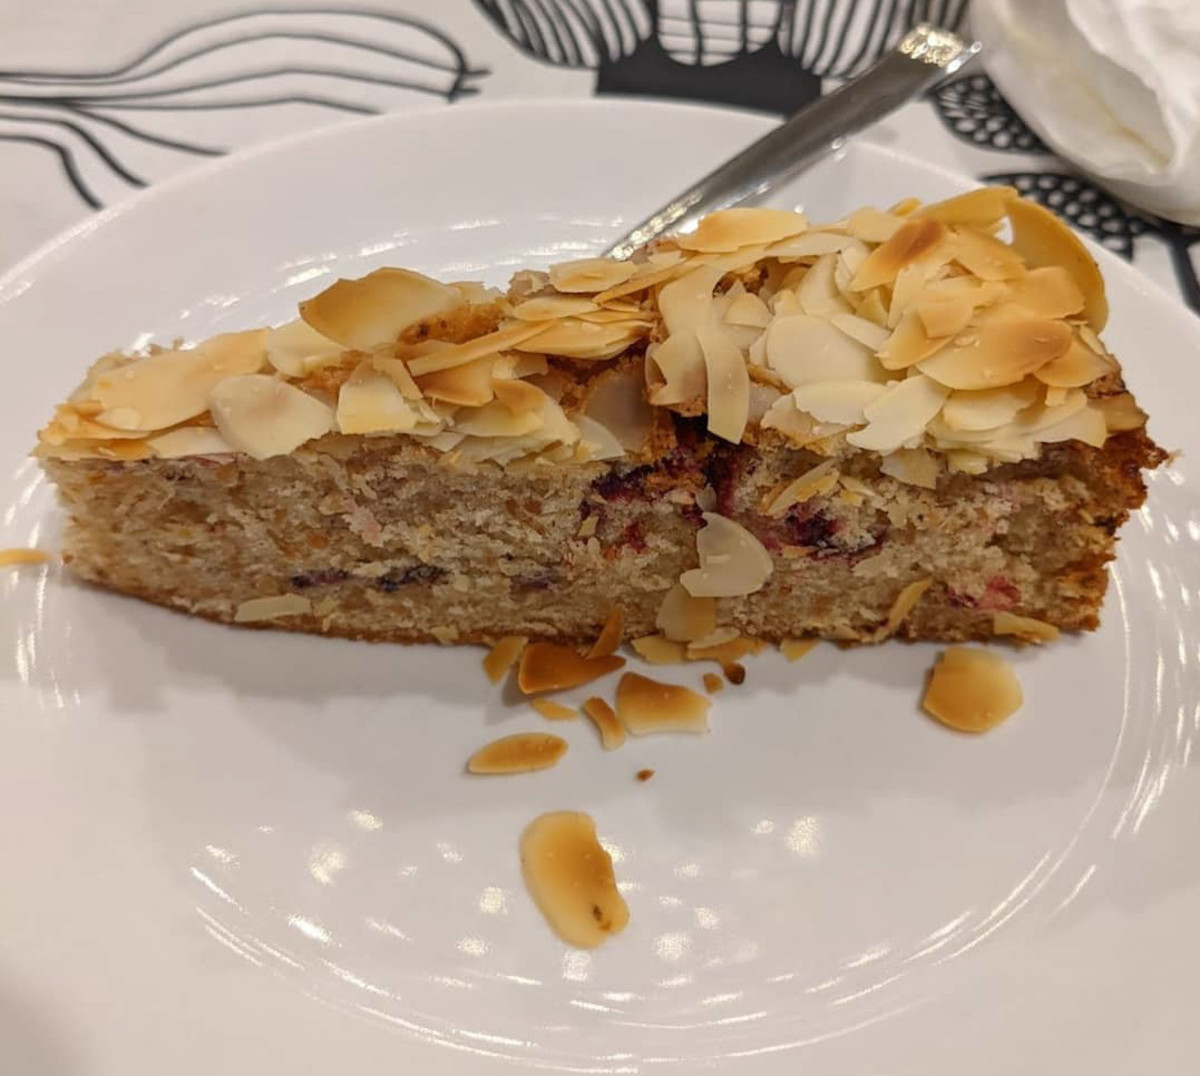 Slice of brown butter almond cake with freeze-dried plum slices and Davidson plum powder